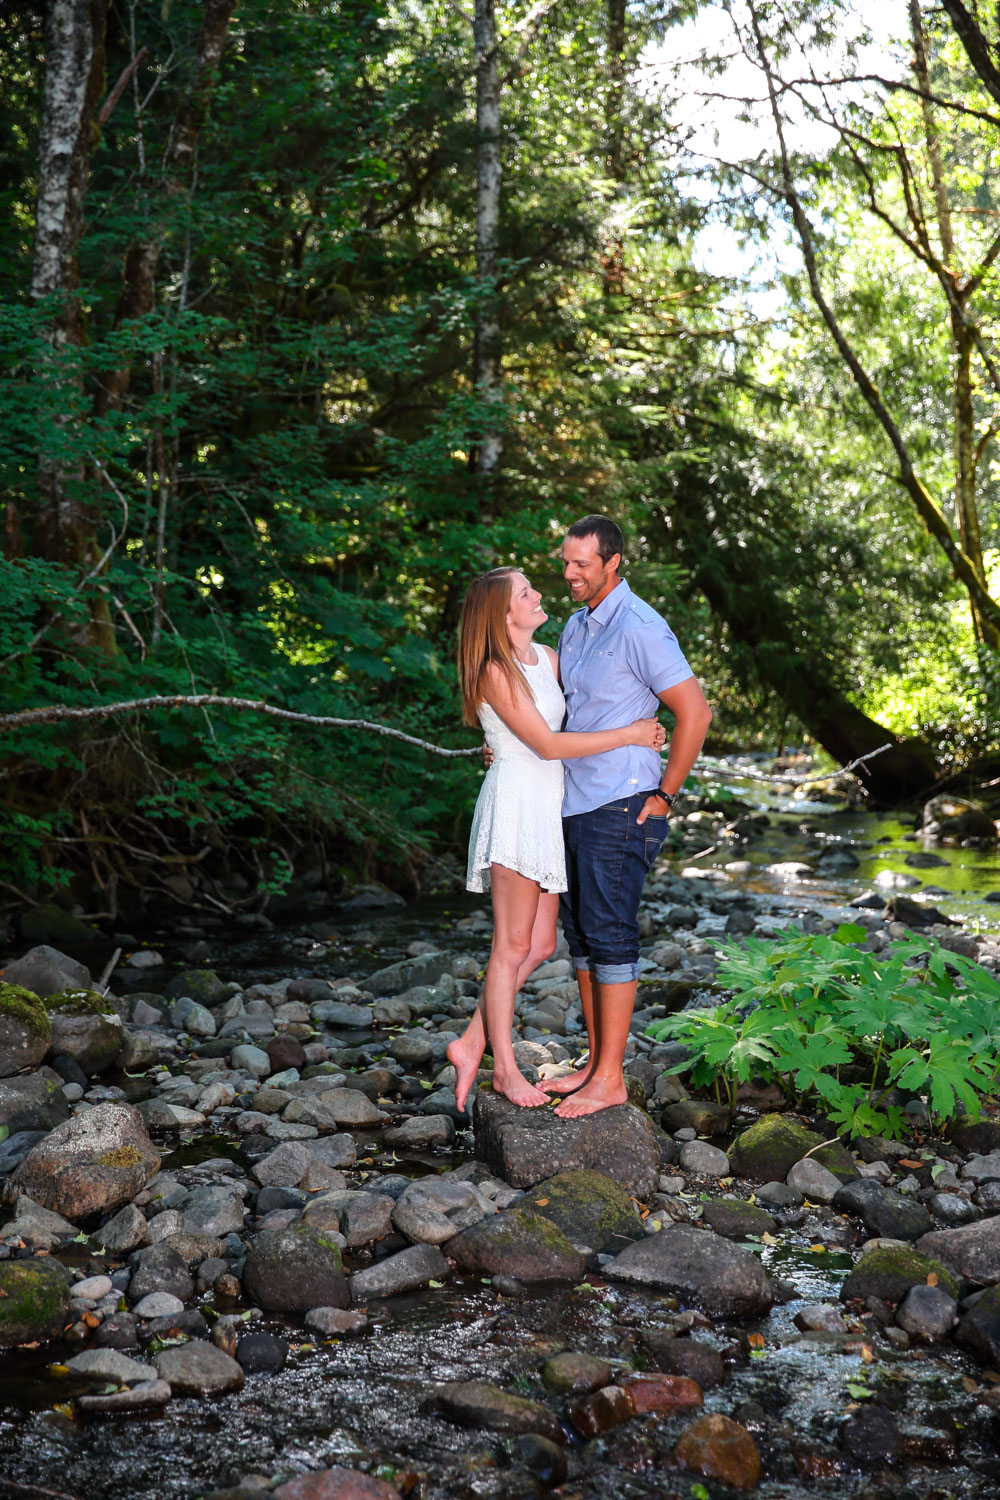 Engagement Photos Wellspring Spa My Rainer Washington07.jpg